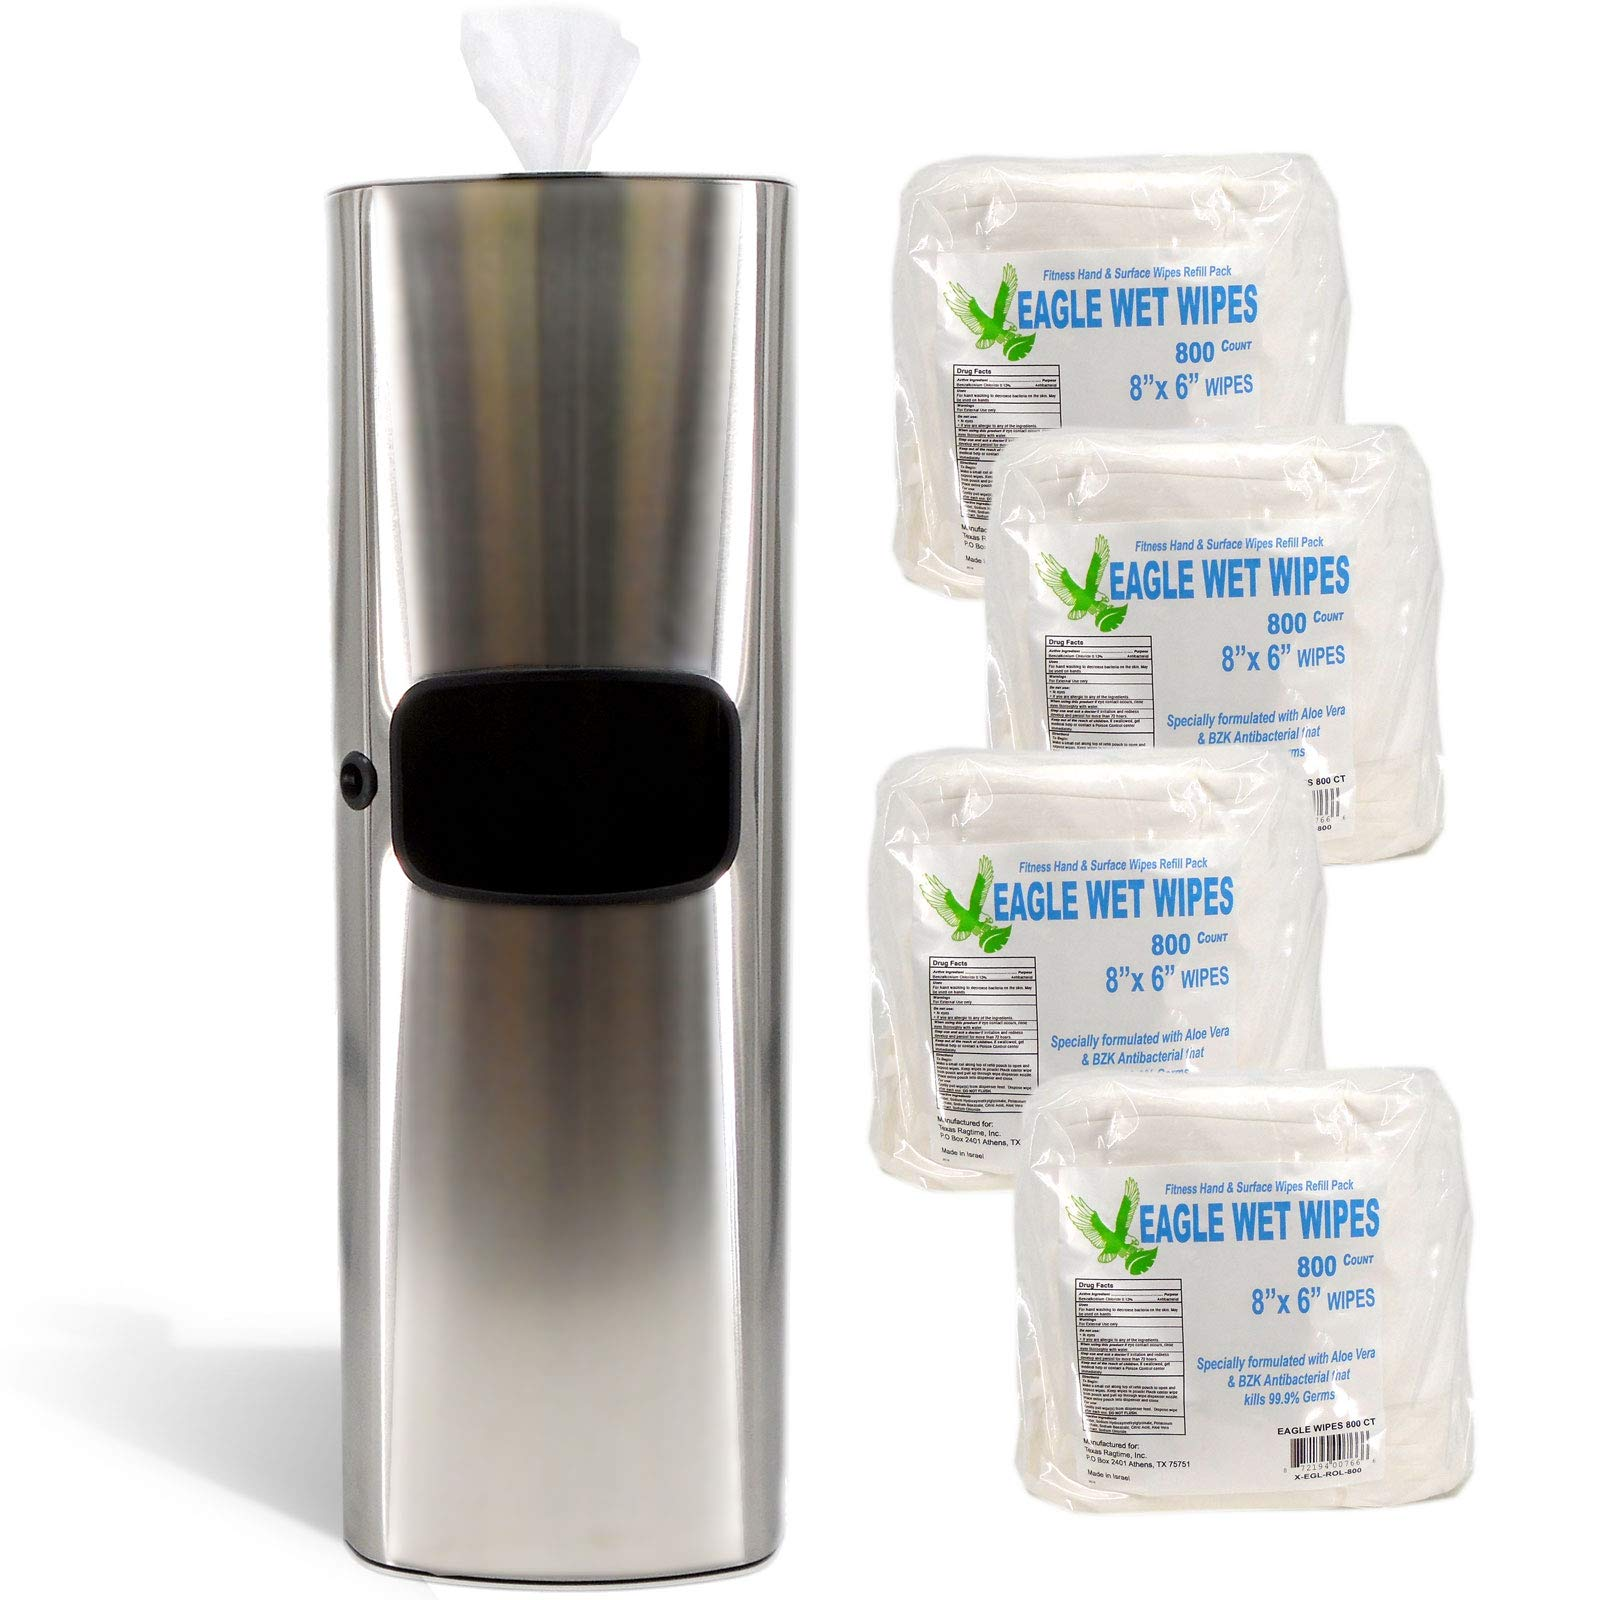 TEXAS RAGTIME Eagle Wipes New Sanitizing Wipes Dispenser and Trash Can Set for Gyms, Offices, Hospitals, Schools, Restrooms Bundle Eagle Wet Wipes Antibacterial Gym Wipes 4 Rolls 3200 Sheets 800/roll